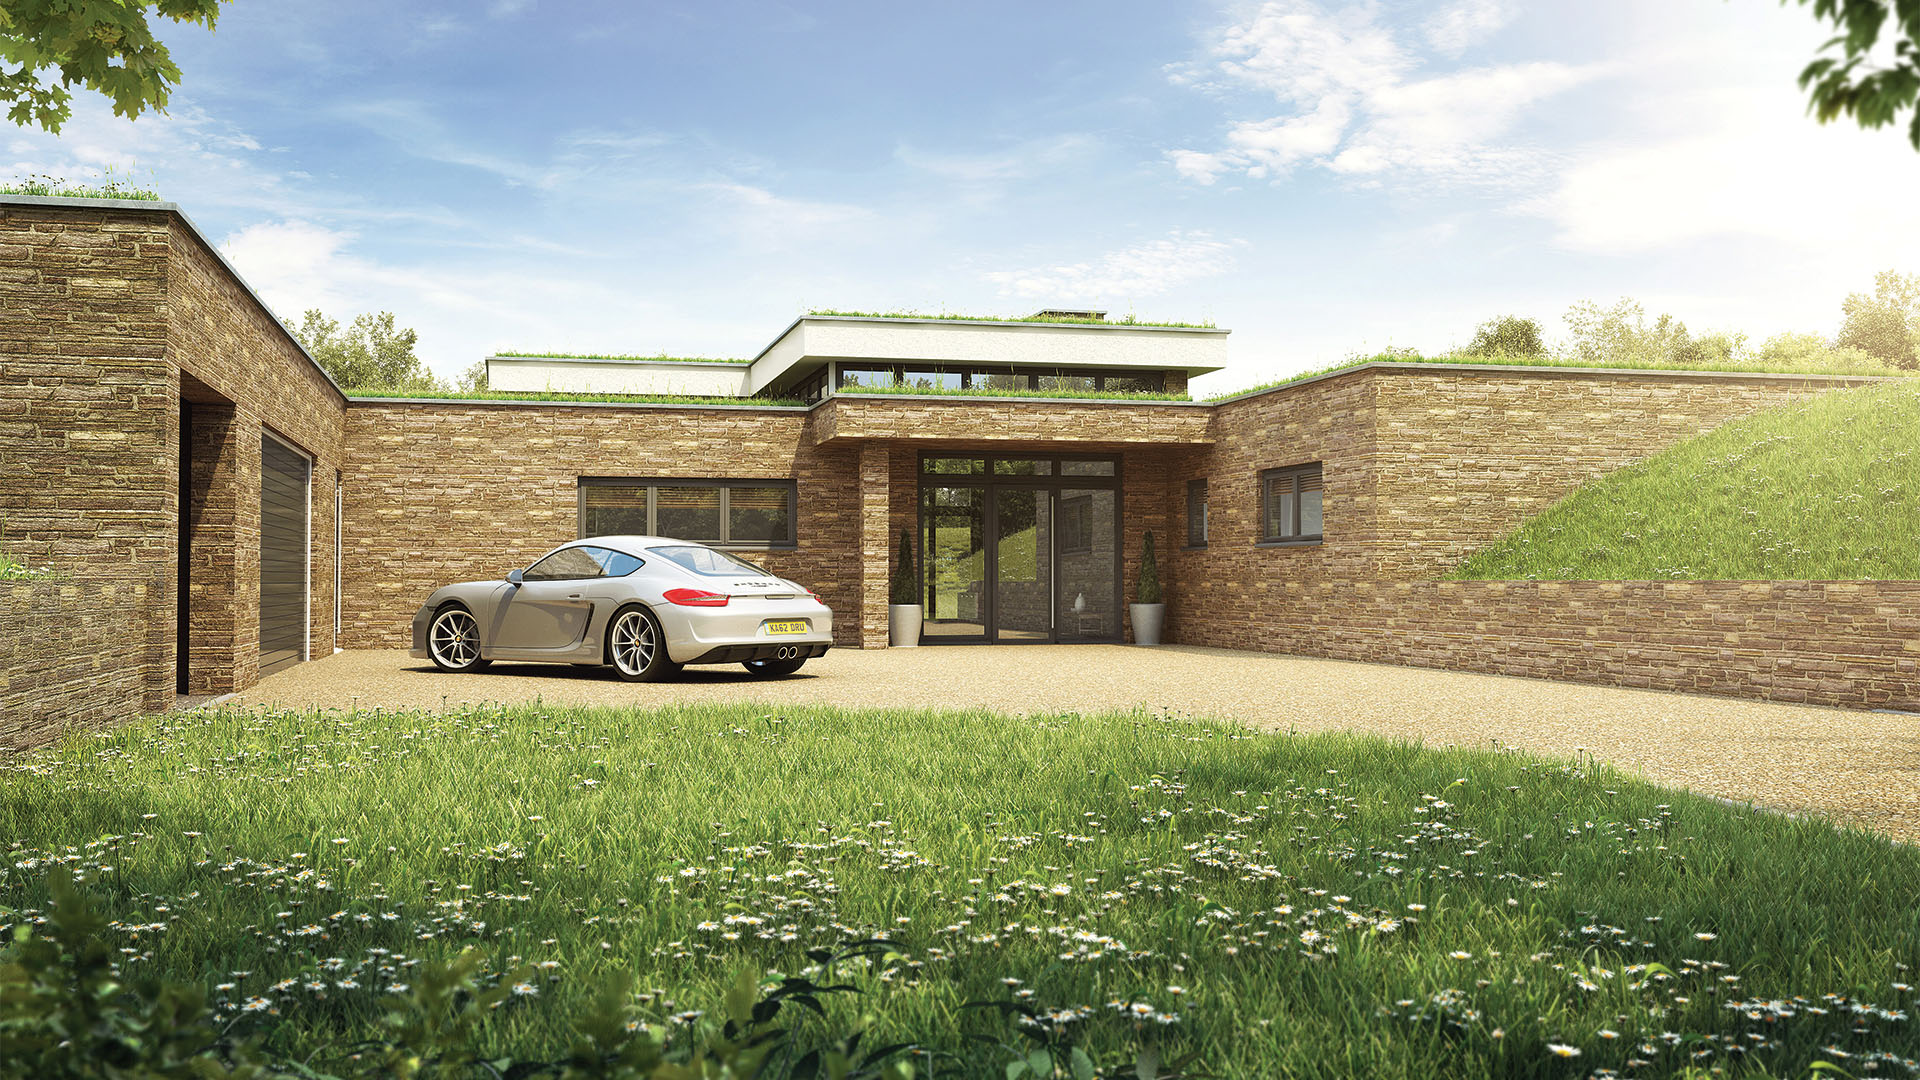 Build it yourself? BIY has attractions for first time buyers and those with grand designs